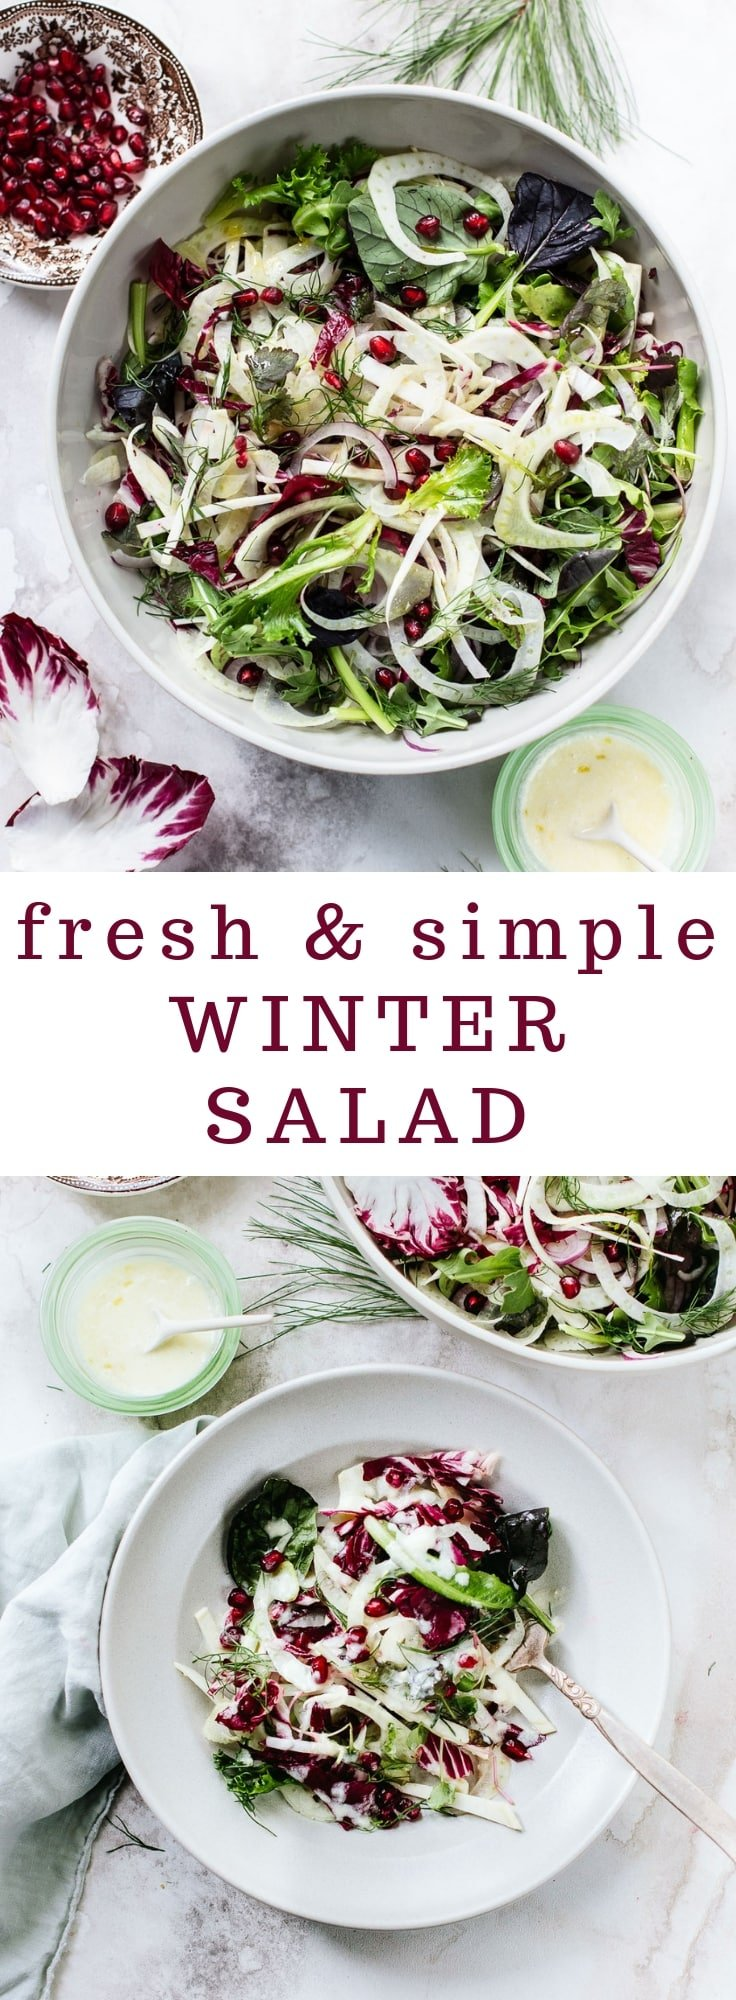 Winter Salad with Shaved Fennel and Pomegranate